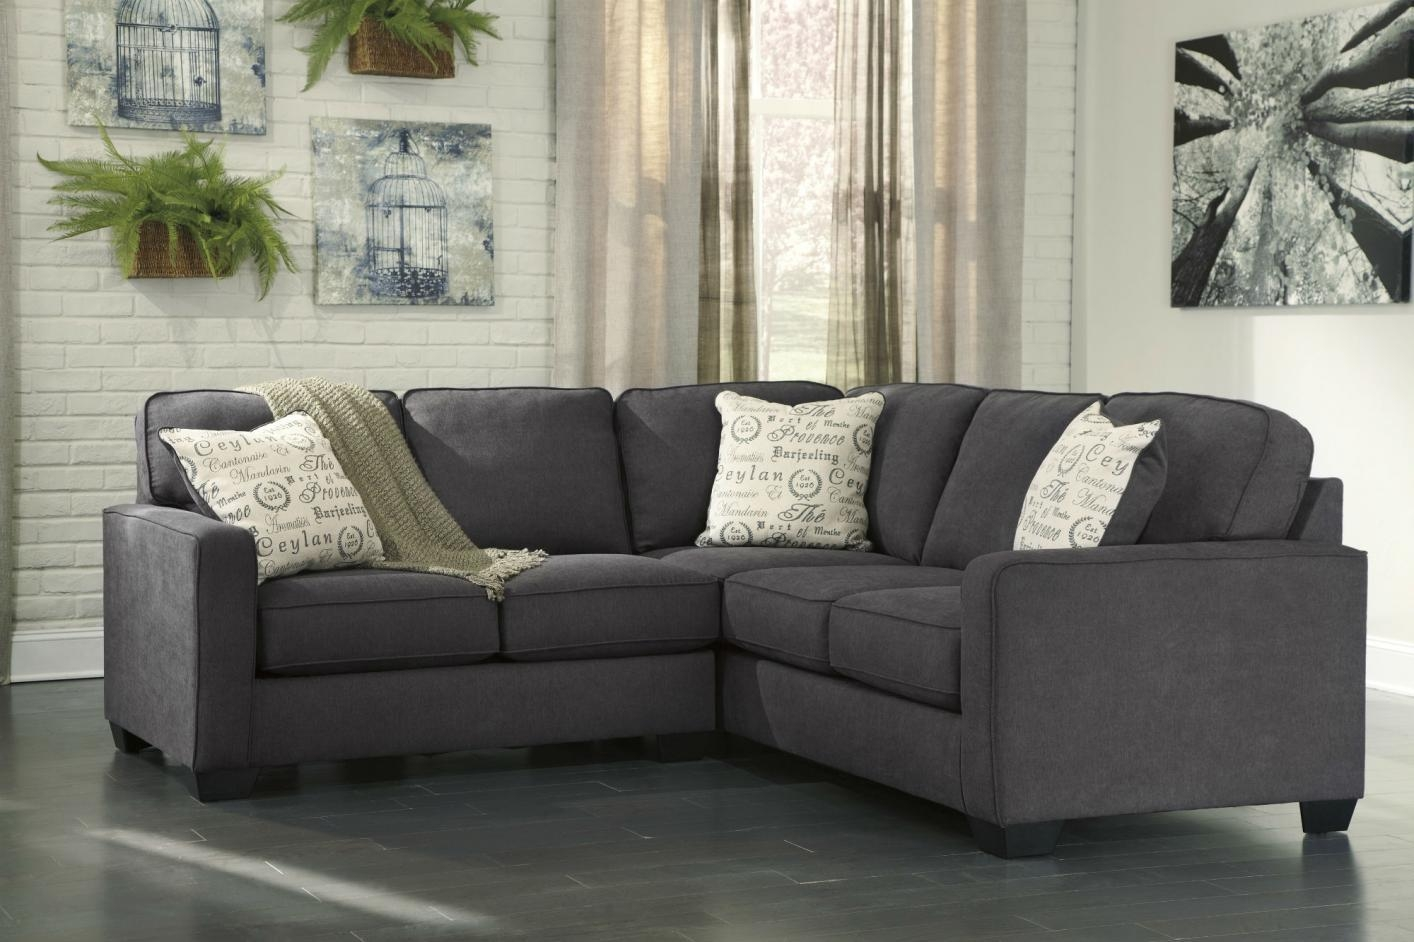 Gray Sectional Sofa Ashley Furniture | Tehranmix Decoration Intended For Charcoal Gray Sectional Sofas (View 16 of 20)